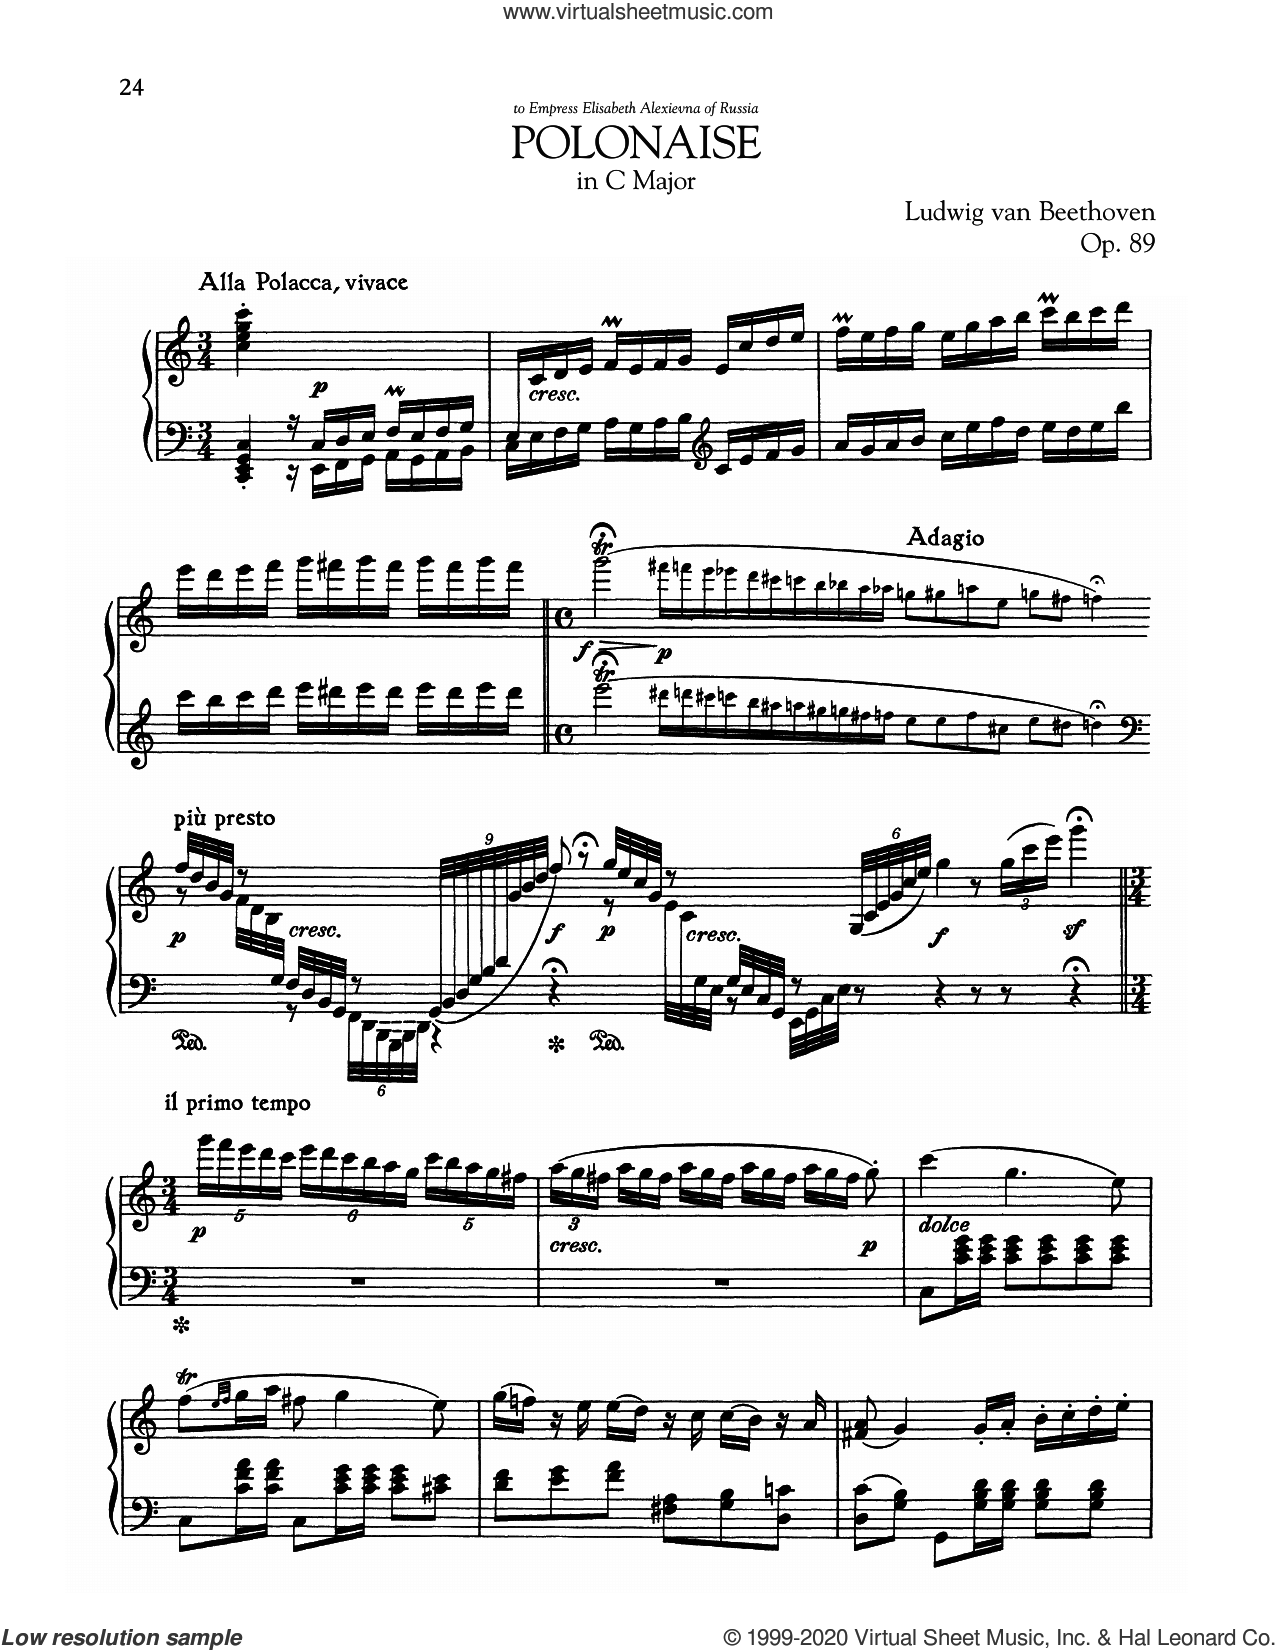 Polonaise, Op. 89 sheet music for piano solo by Ludwig van Beethoven, classical score, intermediate skill level